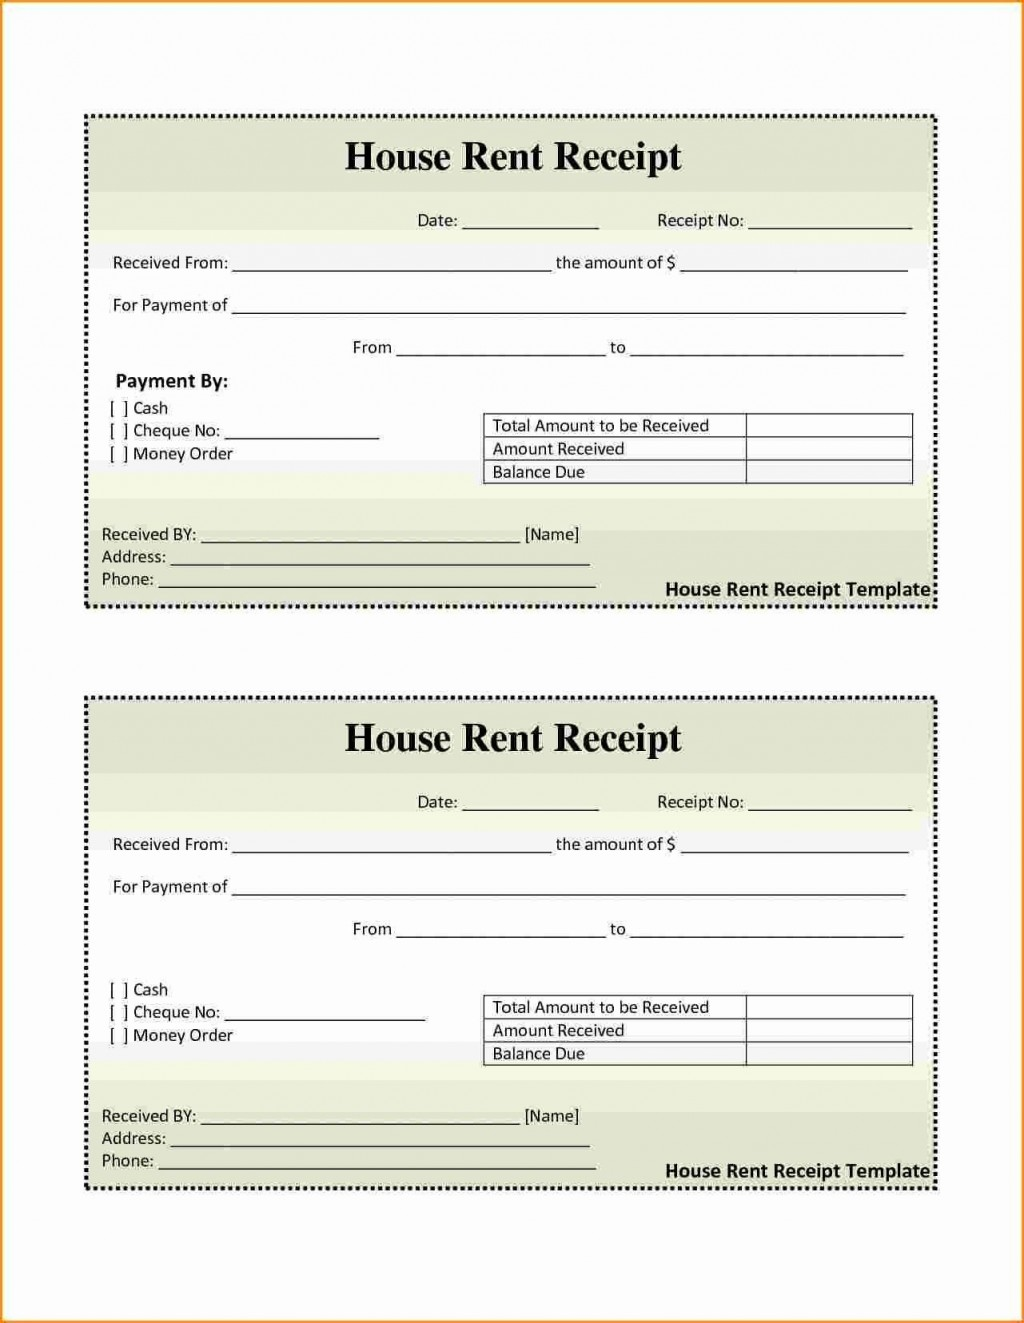 001 Awesome House Rent Receipt Sample Doc Idea  Template Word Document Free Download Format For Income TaxLarge